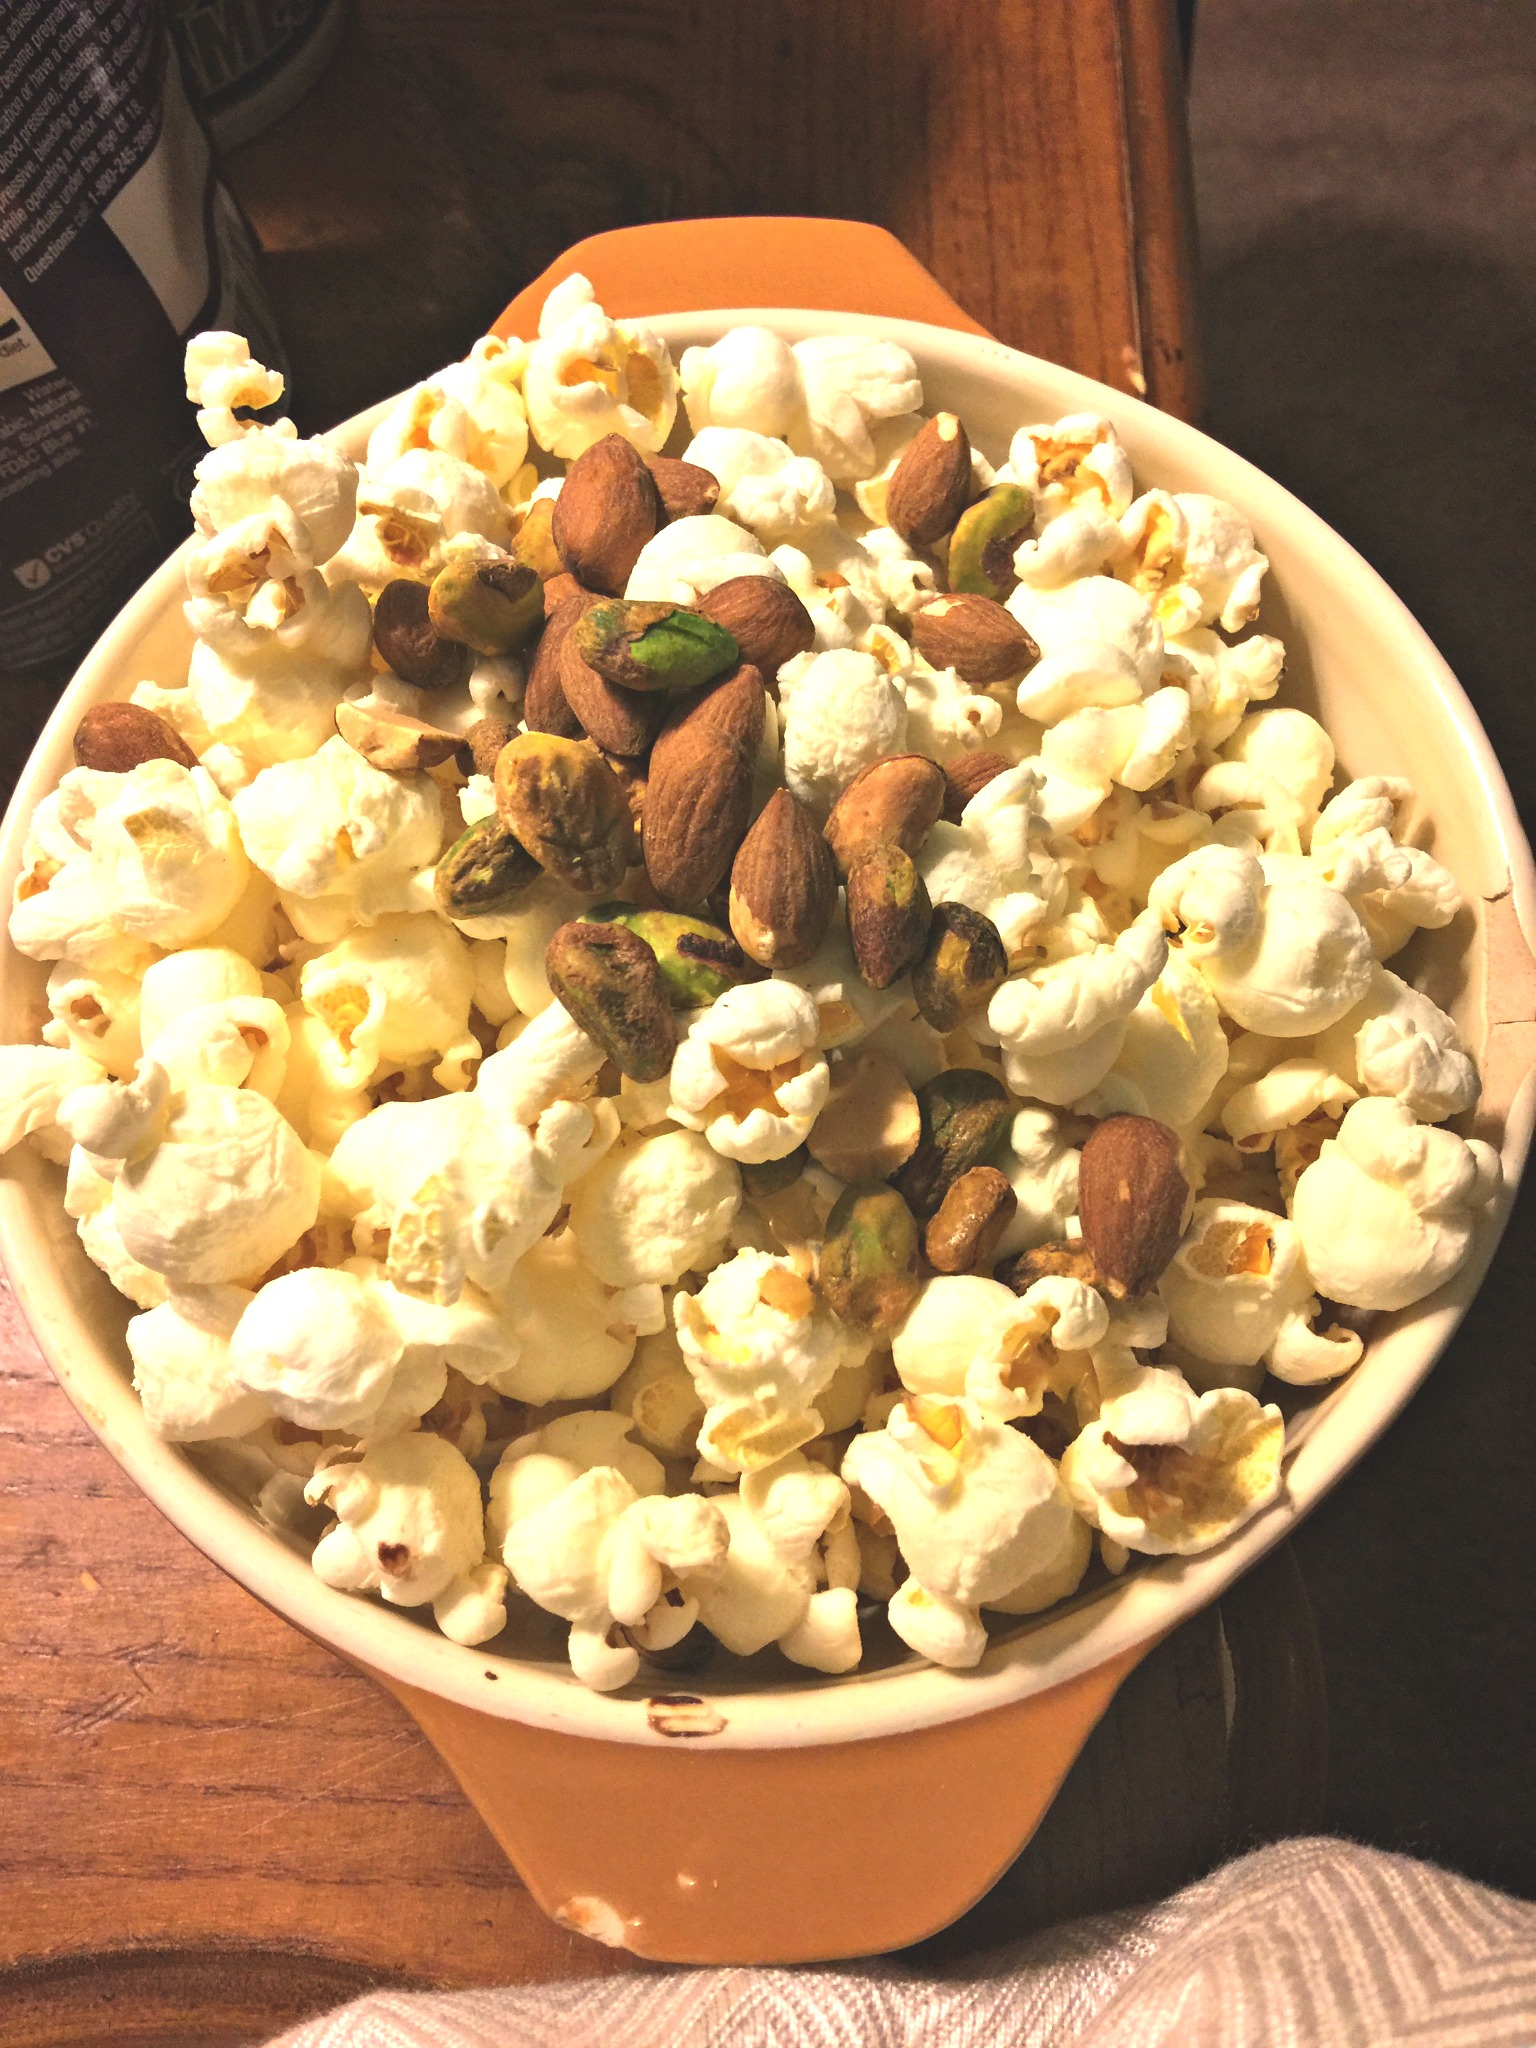 CVS ALMONDS & PISTACHIOS WITH POPCORN